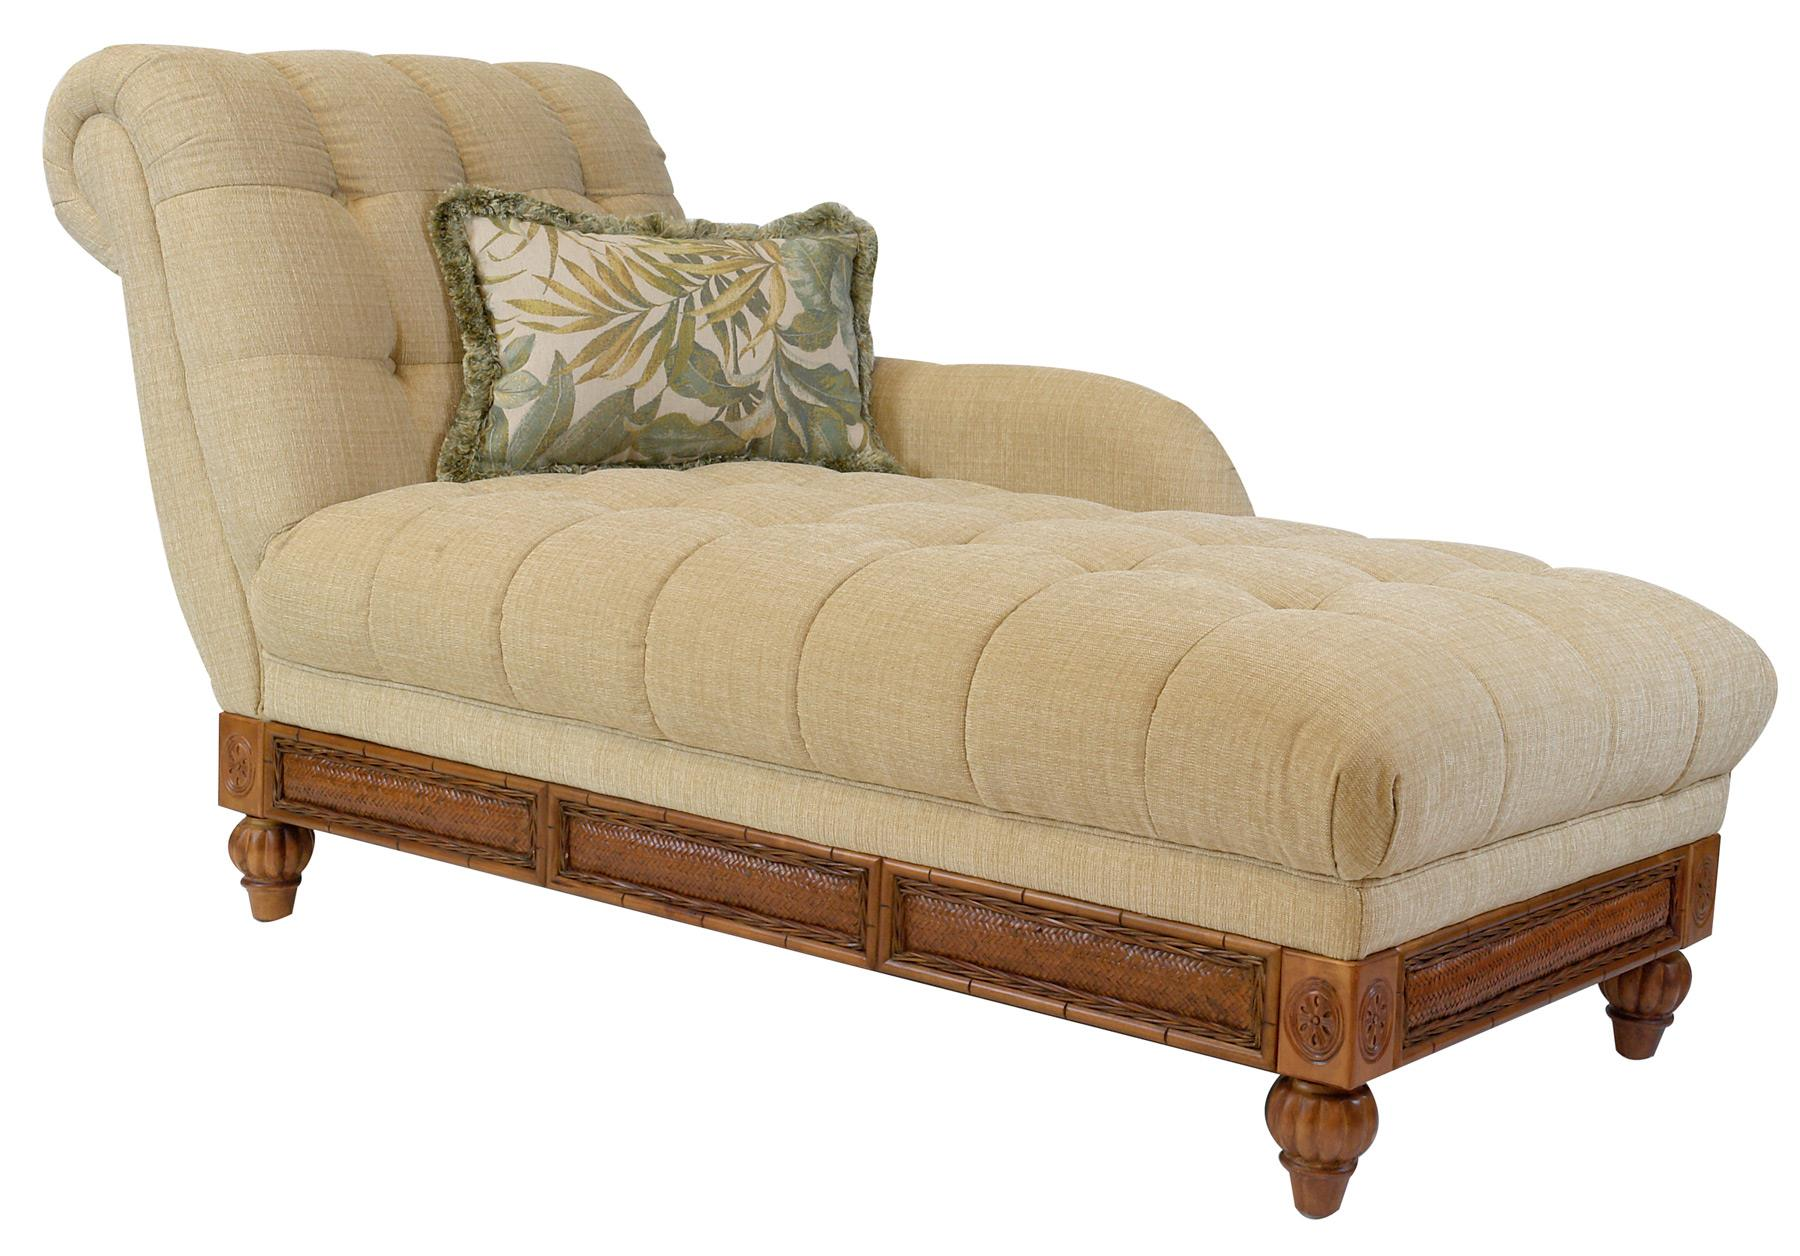 Synergy Home Furnishings Bailey Chaise - Item Number: 896-19 BAILEY